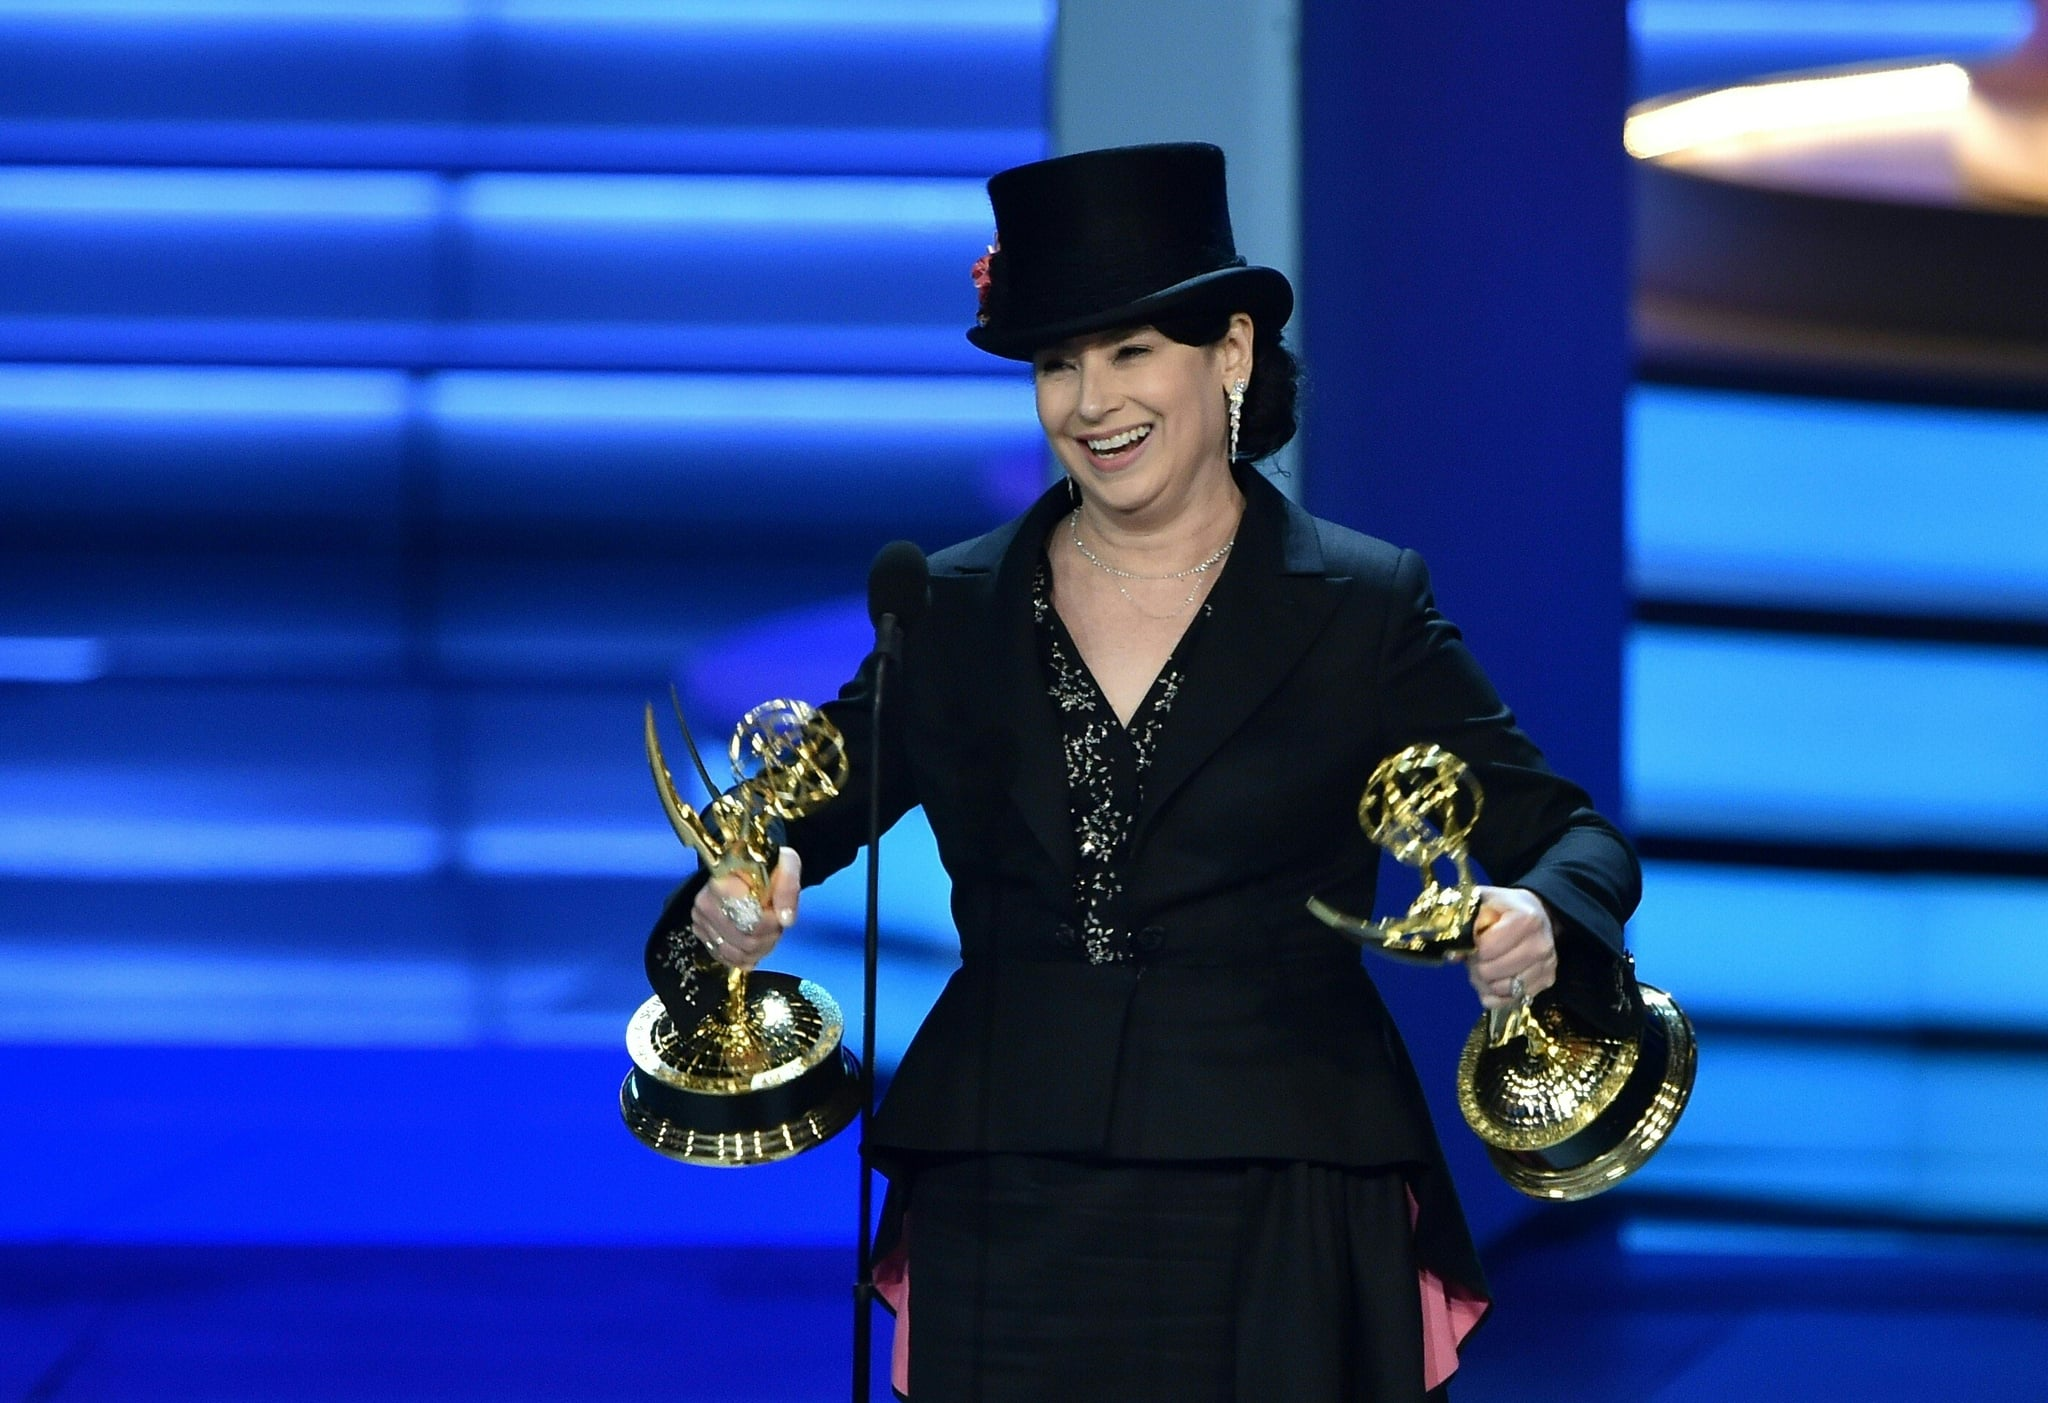 Amy Sherman-Palladino writing comedy series winner and directing comedy series winner onstage during the 70th Emmy Awards at the Microsoft Theatre in Los Angeles, California on September 17, 2018. (Photo by Robyn BECK / AFP)        (Photo credit should read ROBYN BECK/AFP/Getty Images)